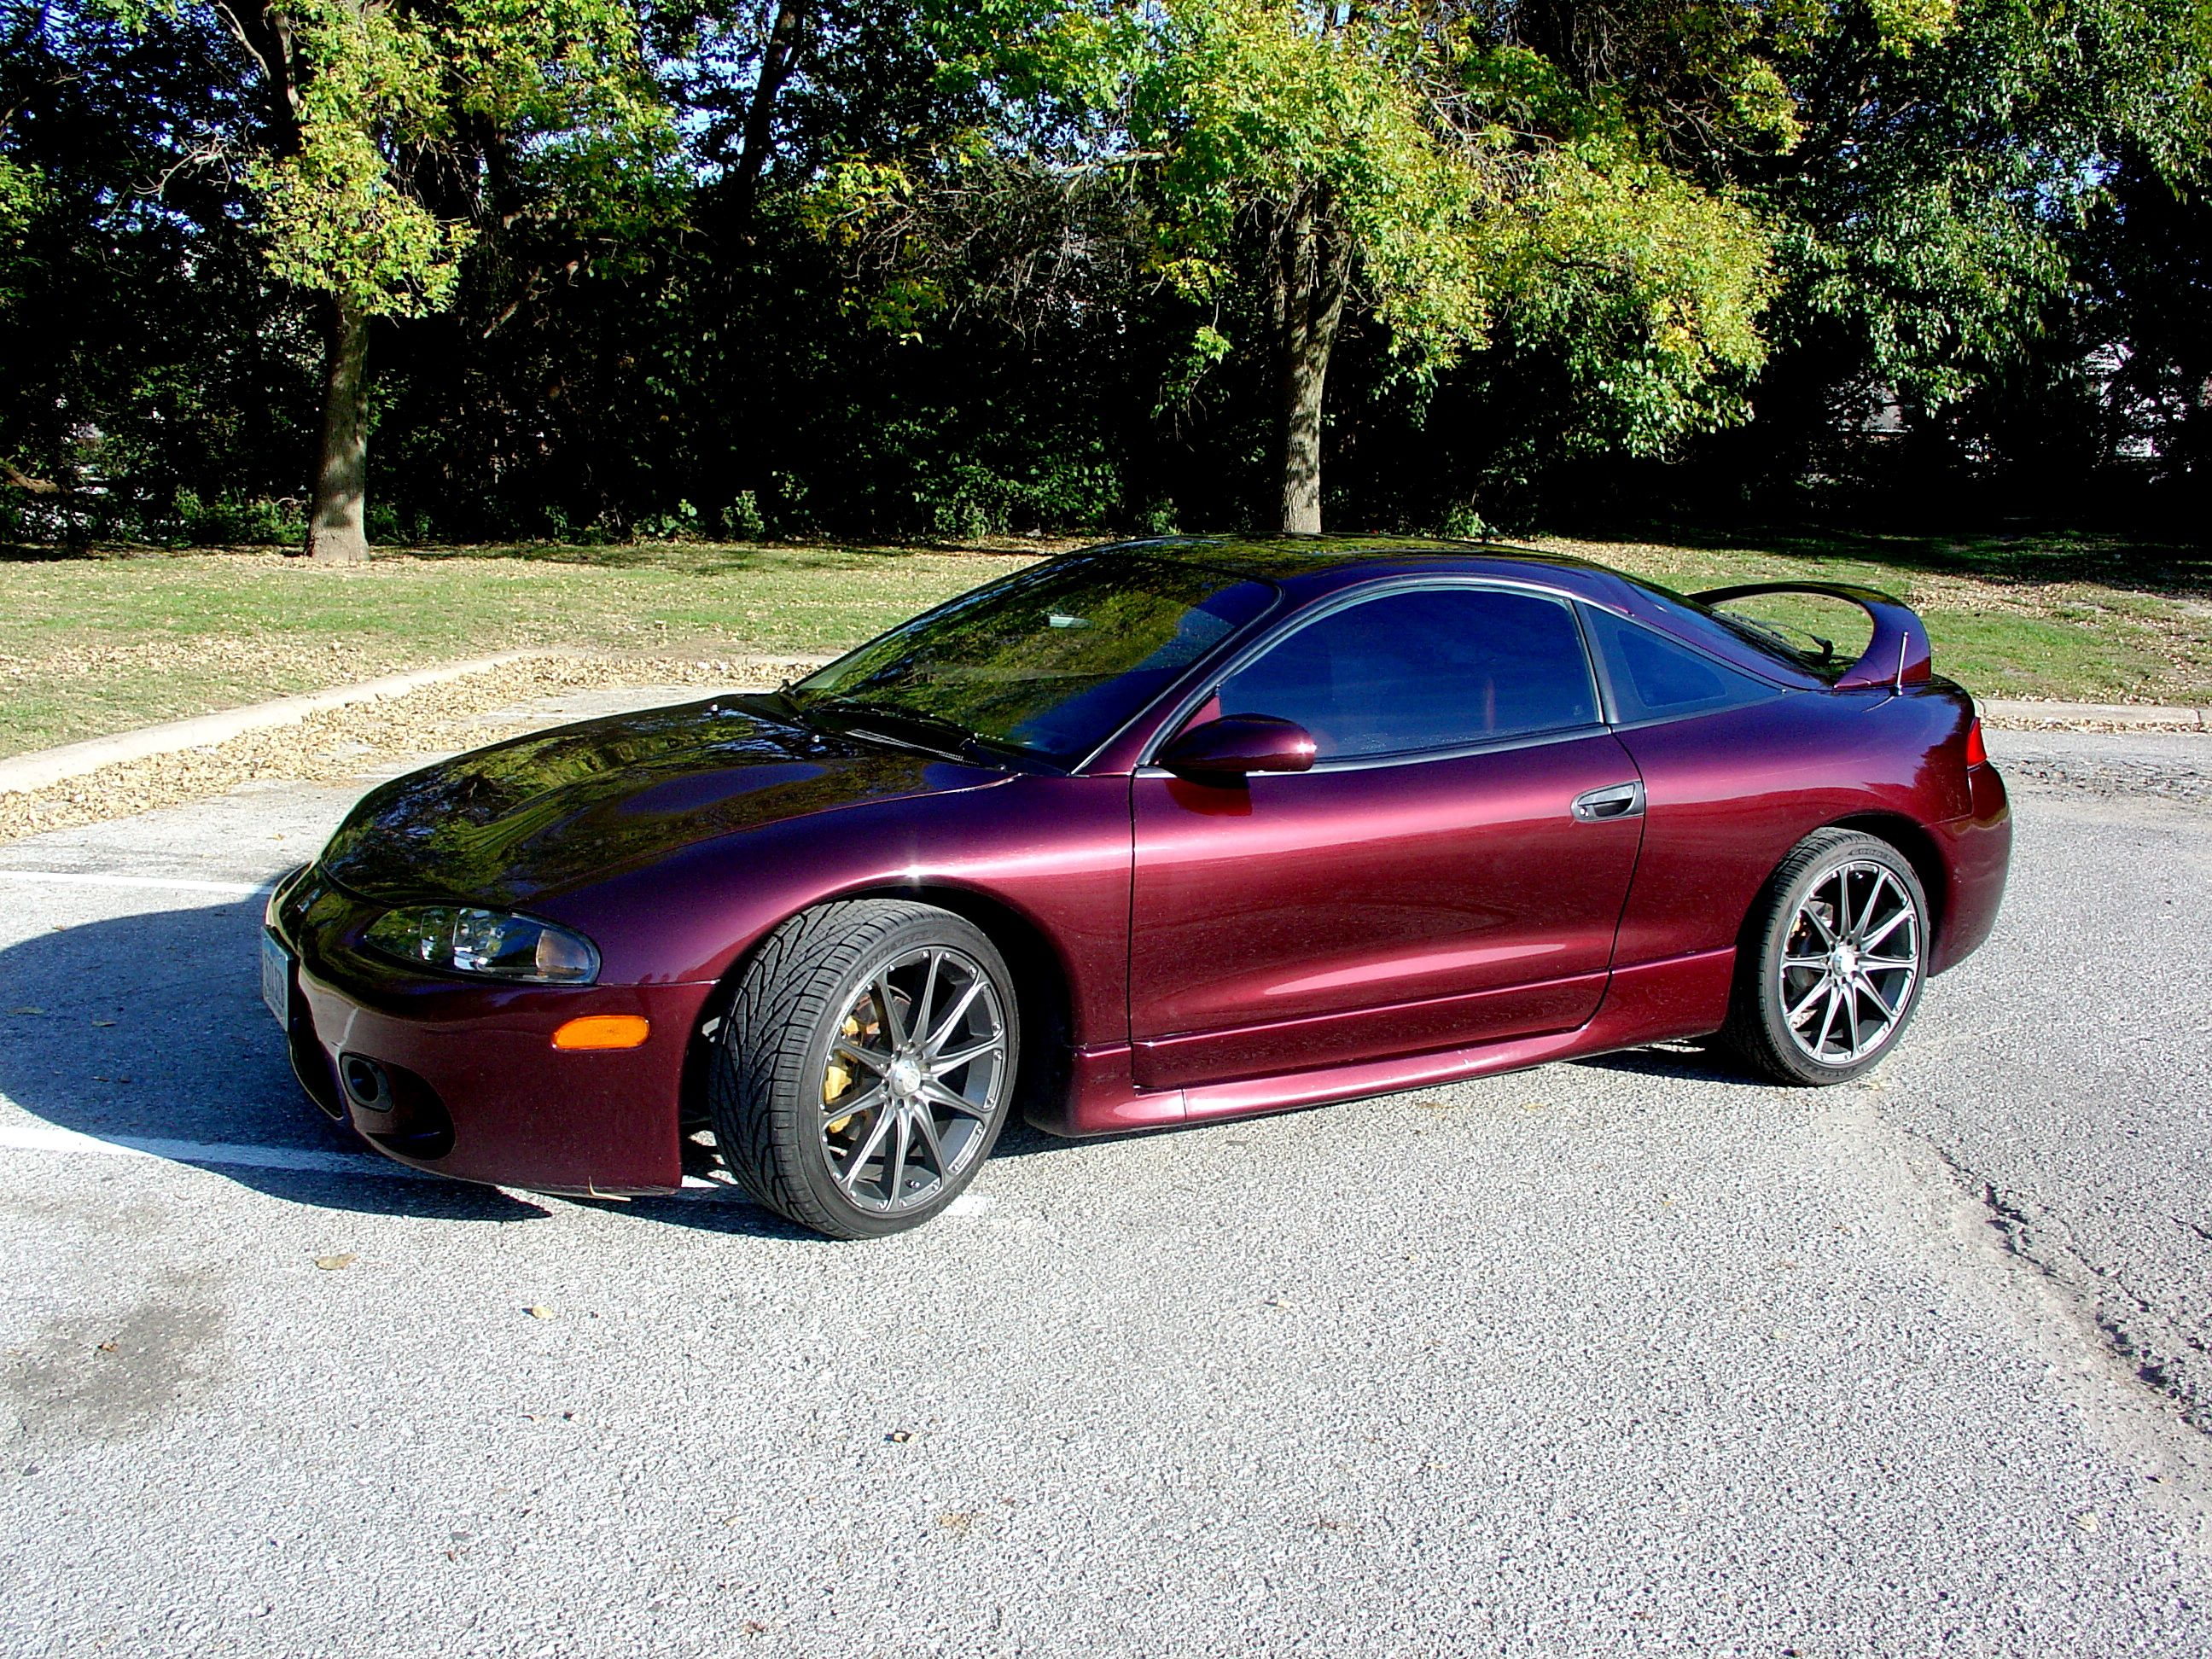 flores mitsubishi pinterest juan more eclipse gt on sale for by information pin